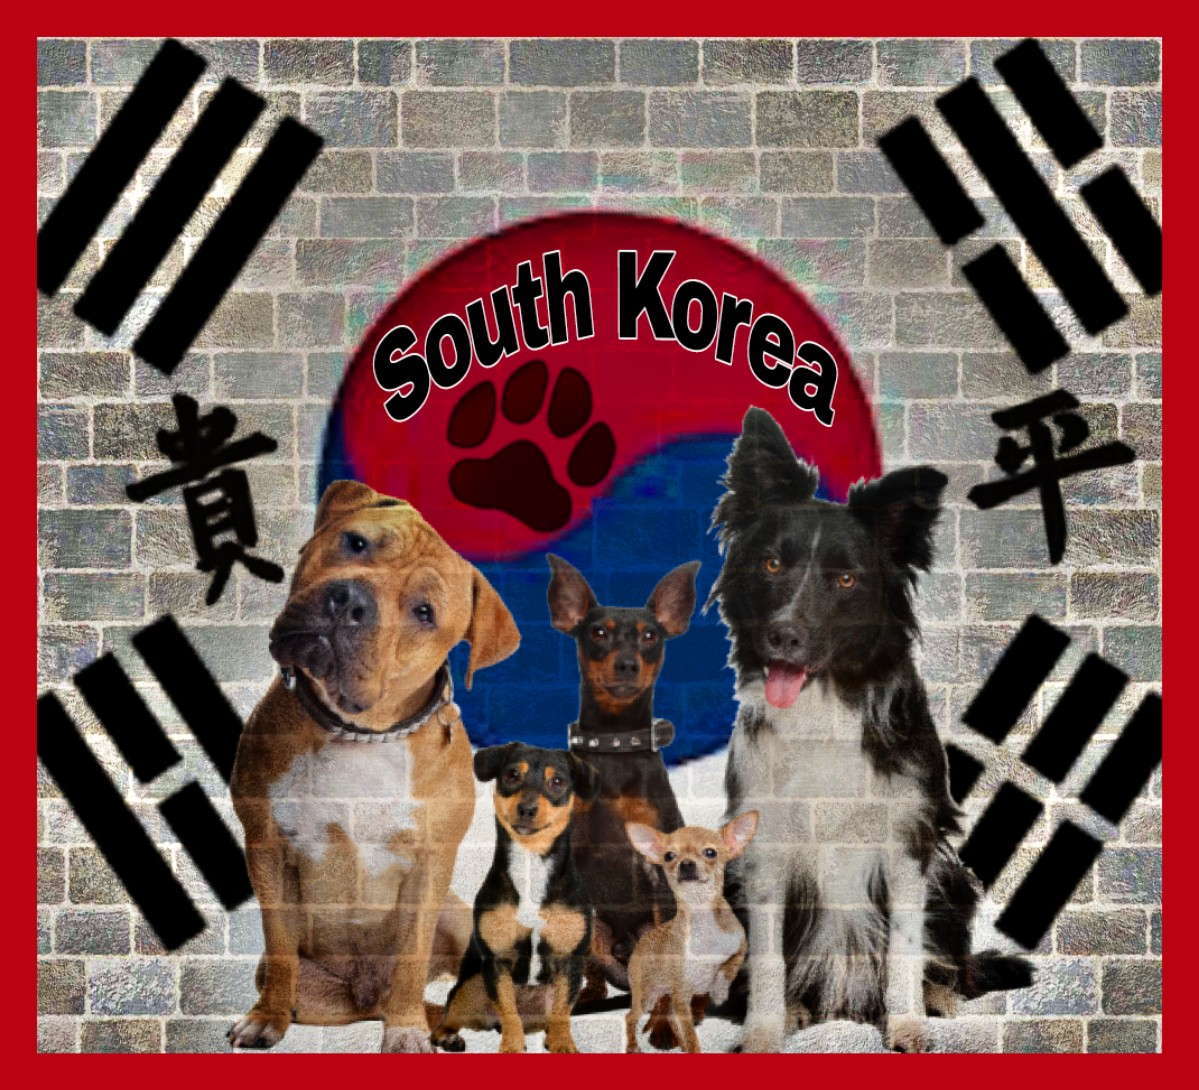 South Korean court rules that killing dogs for meat is